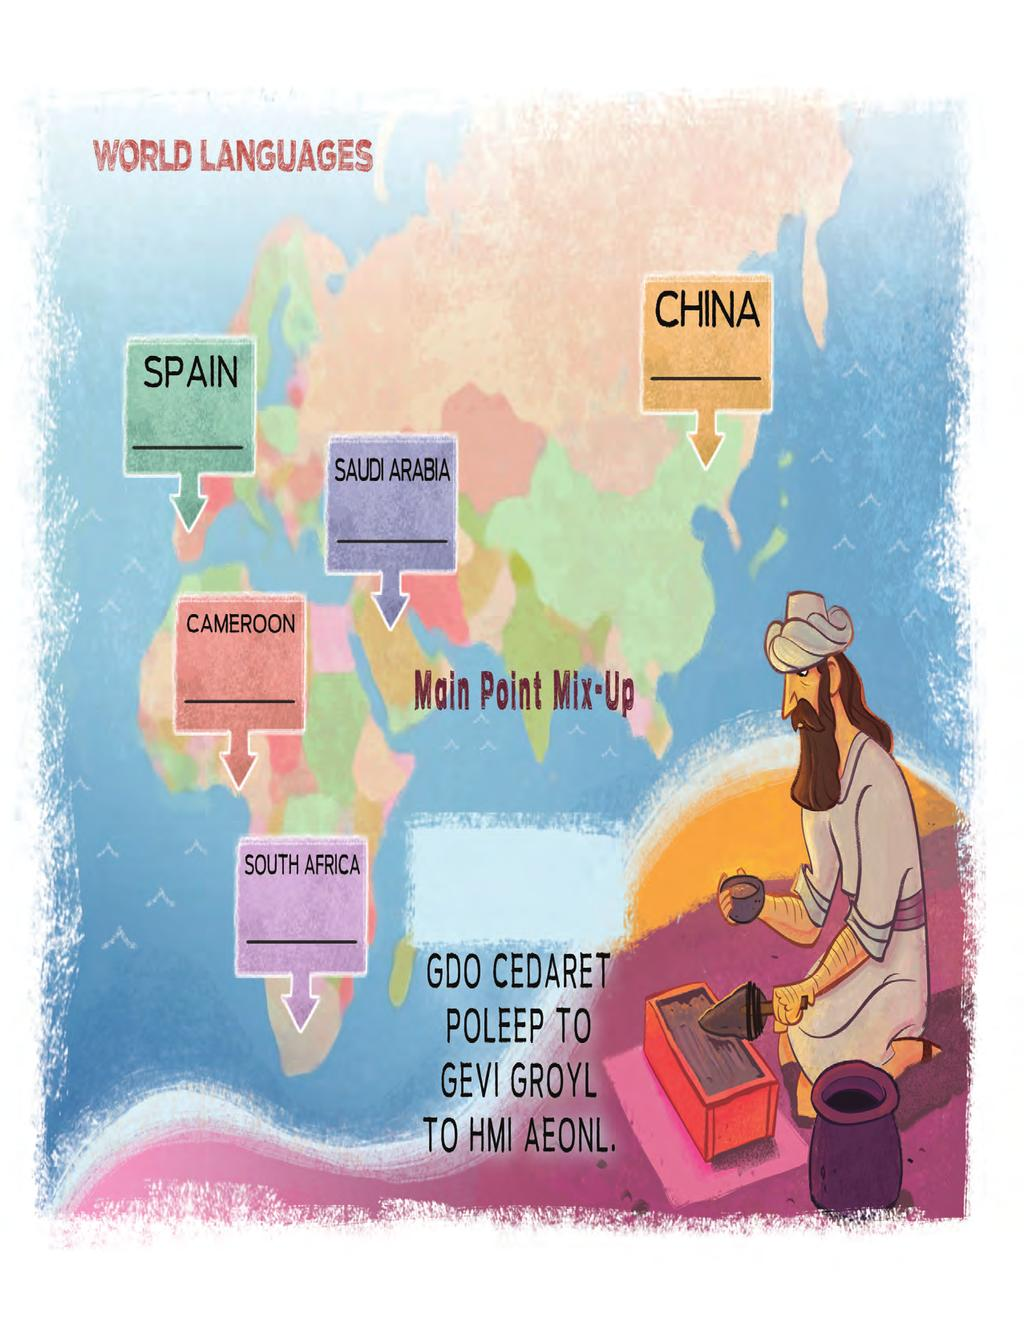 Can you guess the official languages of these countries? Write the language below the country's name.